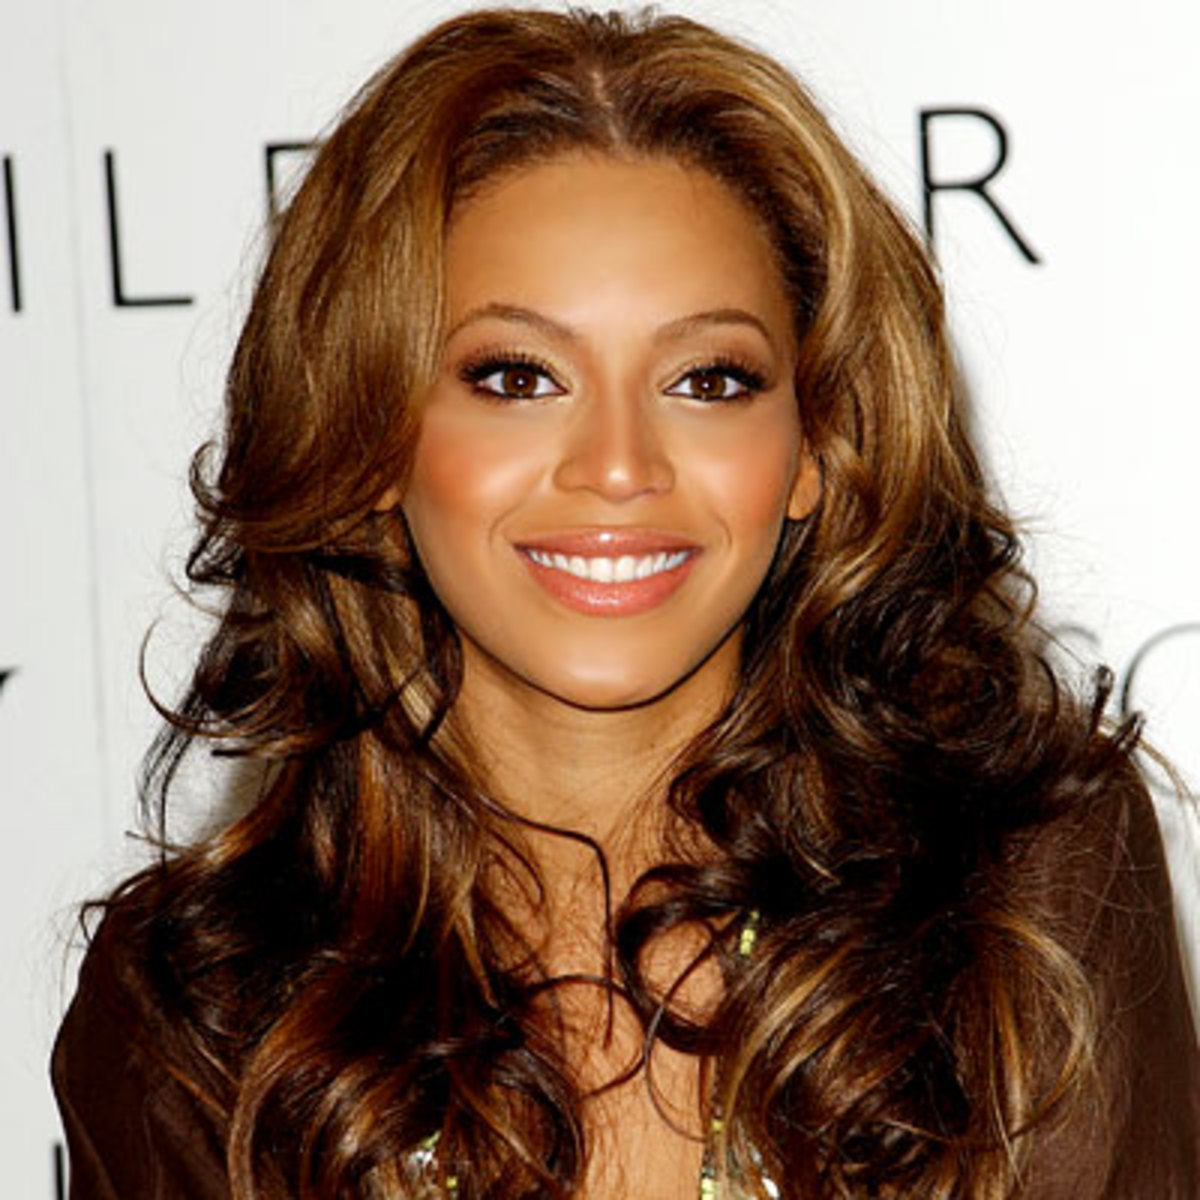 5. Beyonce (former member of Destiny's Child). Black is beauty and that's her!